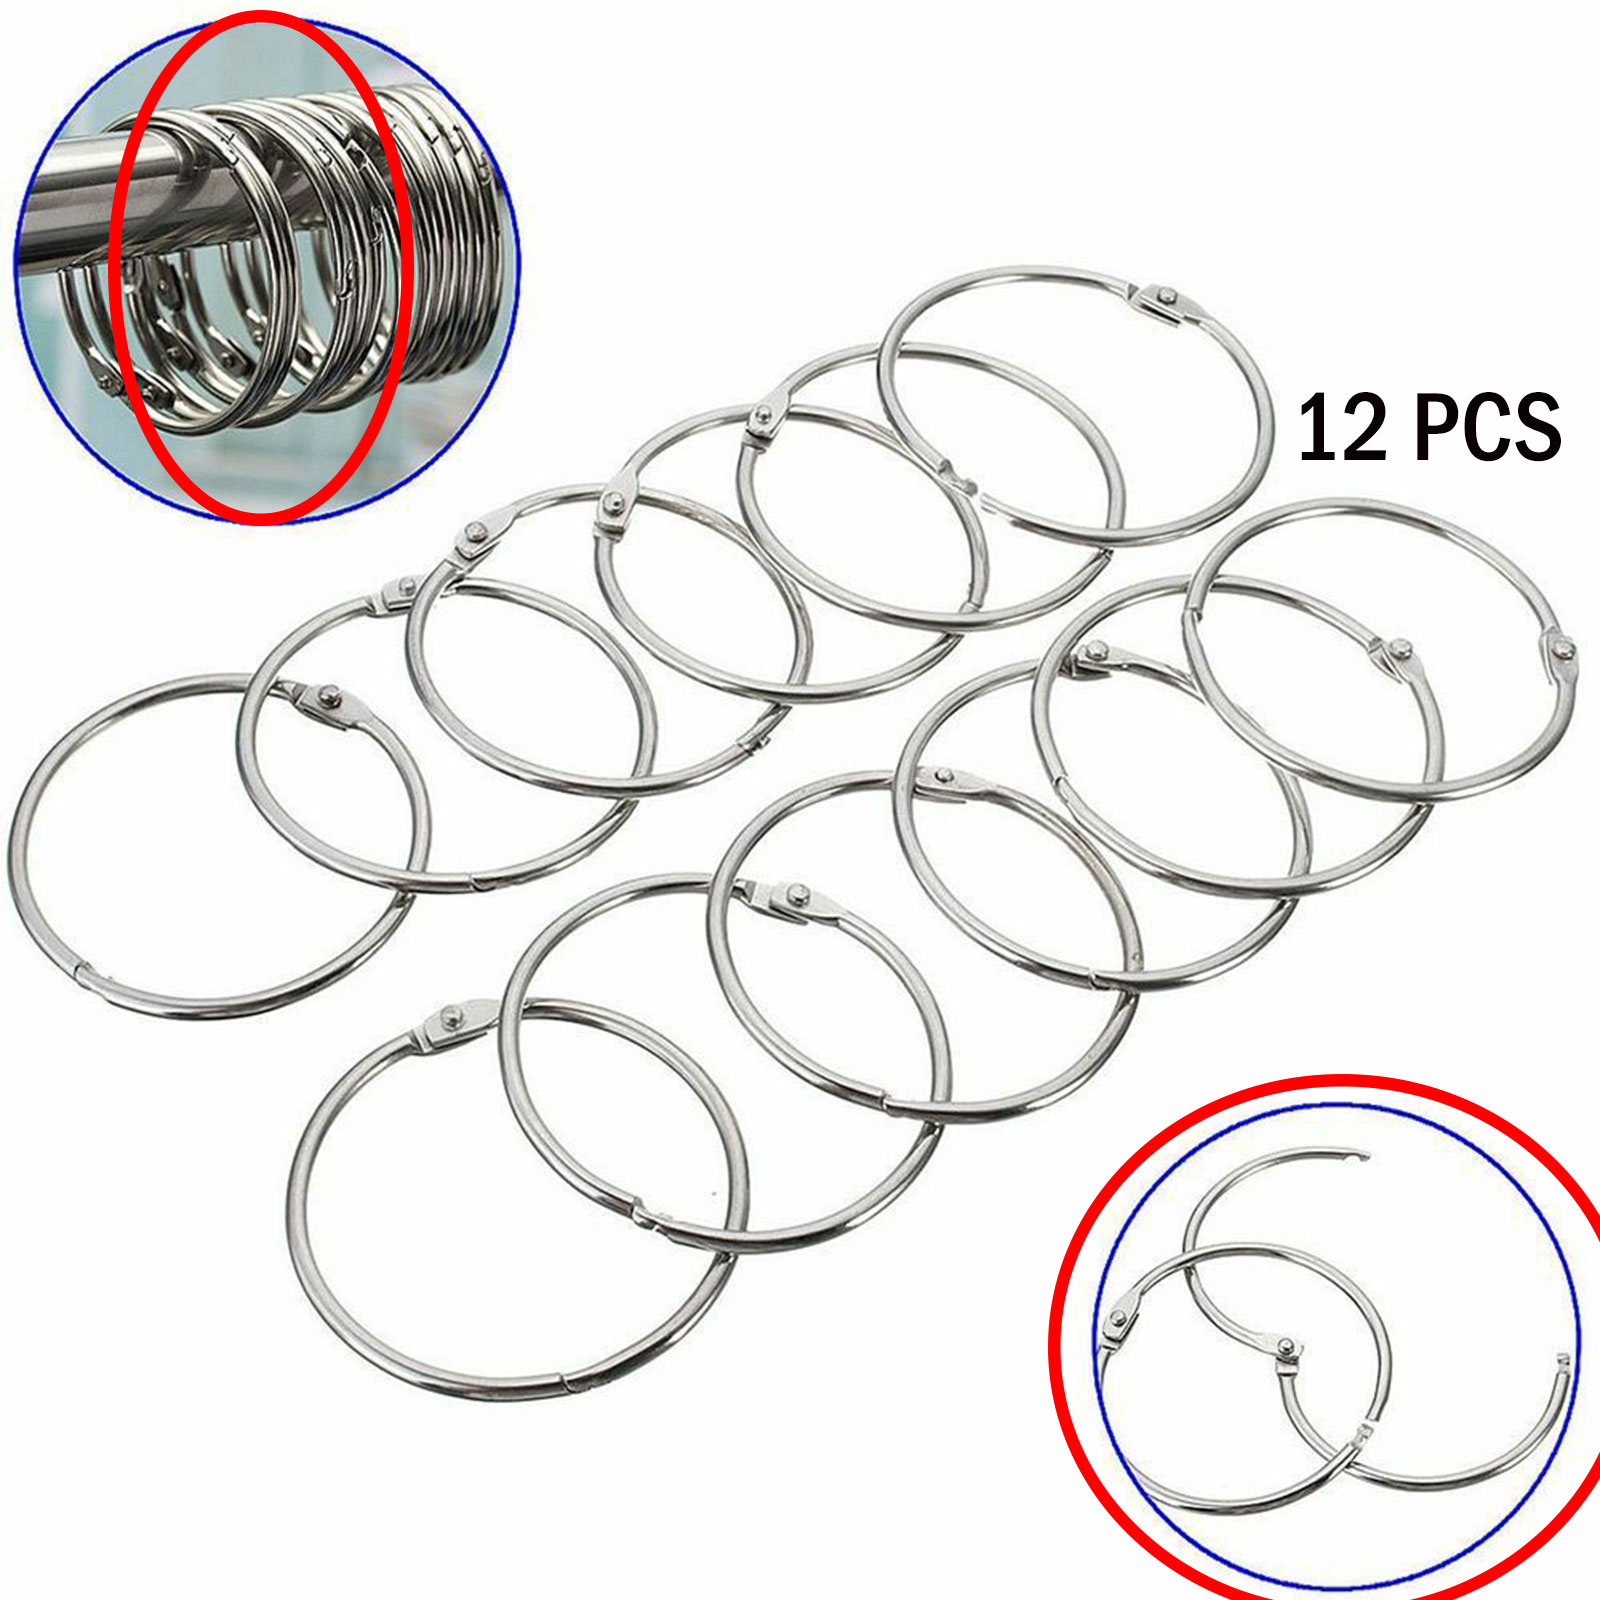 Details About 12x Round Anti Rust Metal Shower Curtain Easy Glide Bathroom Tool Hook Ring Pro